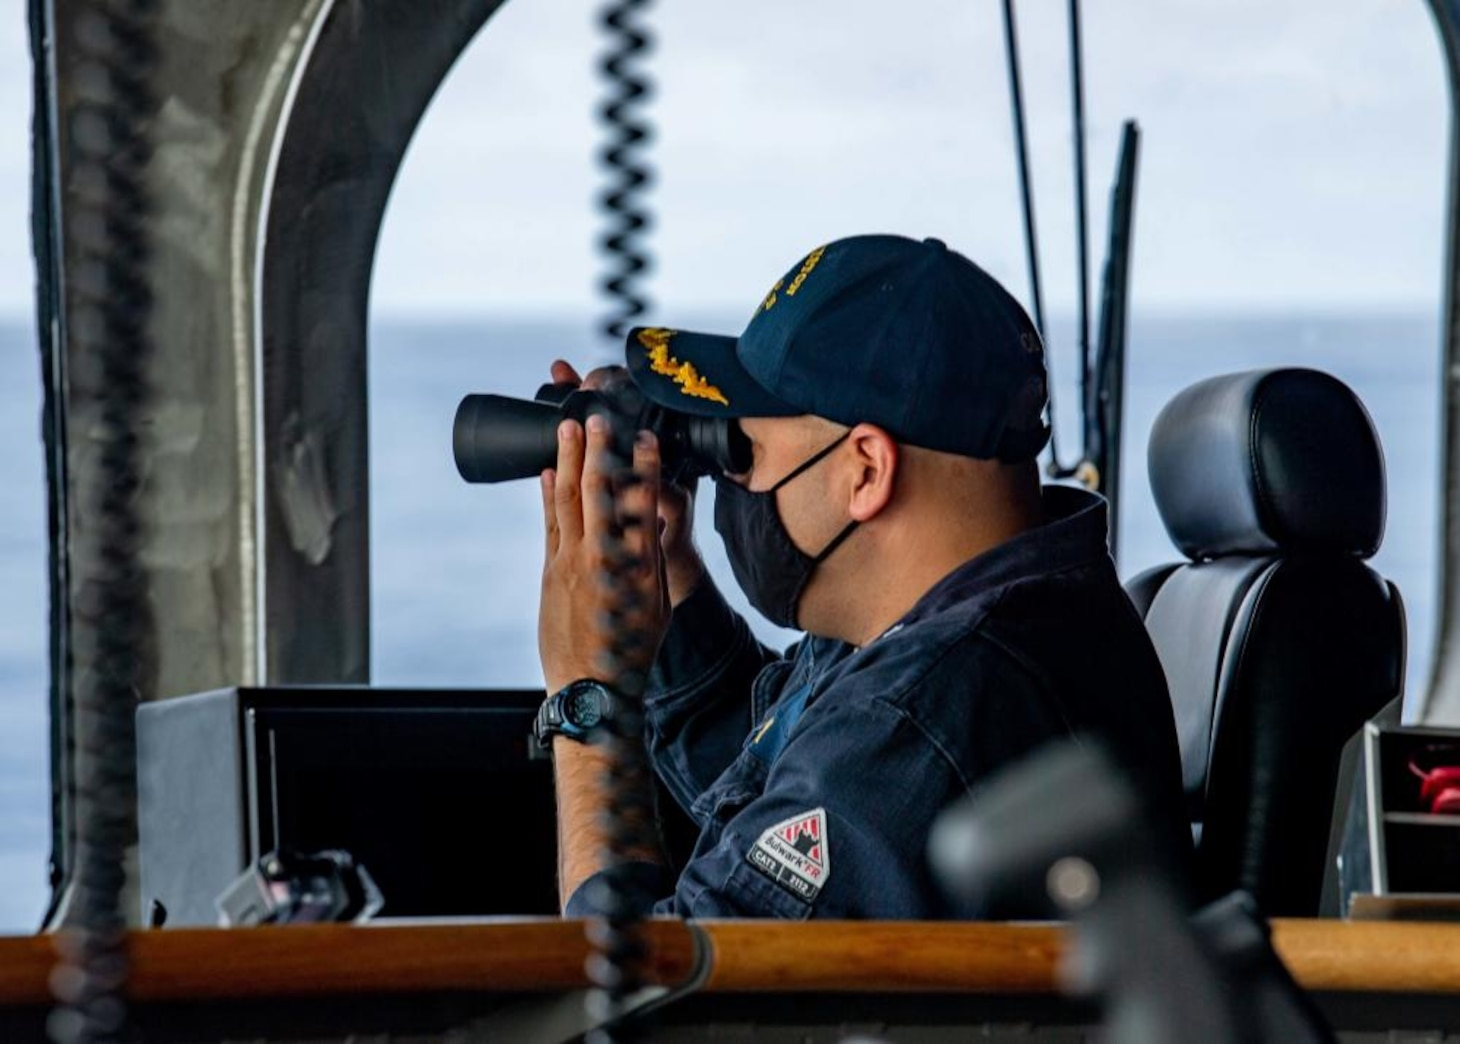 USS Charleston (LCS 18) Conducts Routine Operations in the Philippine Sea